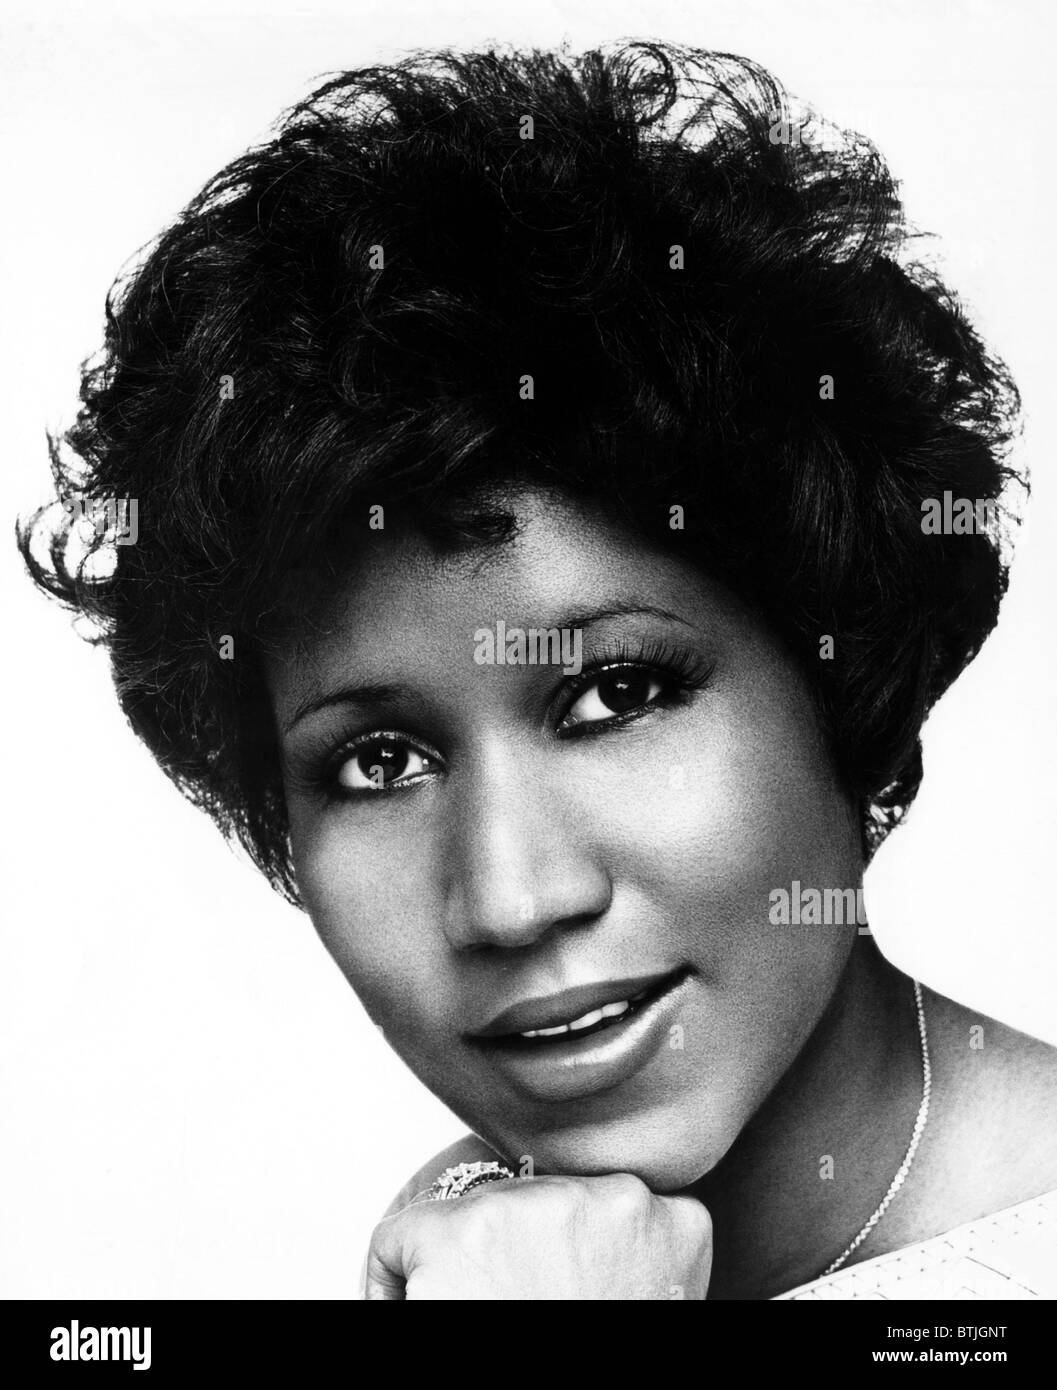 Aretha Franklin, 1970s. Courtesy CSU Archives/Everett Collection. - Stock Image